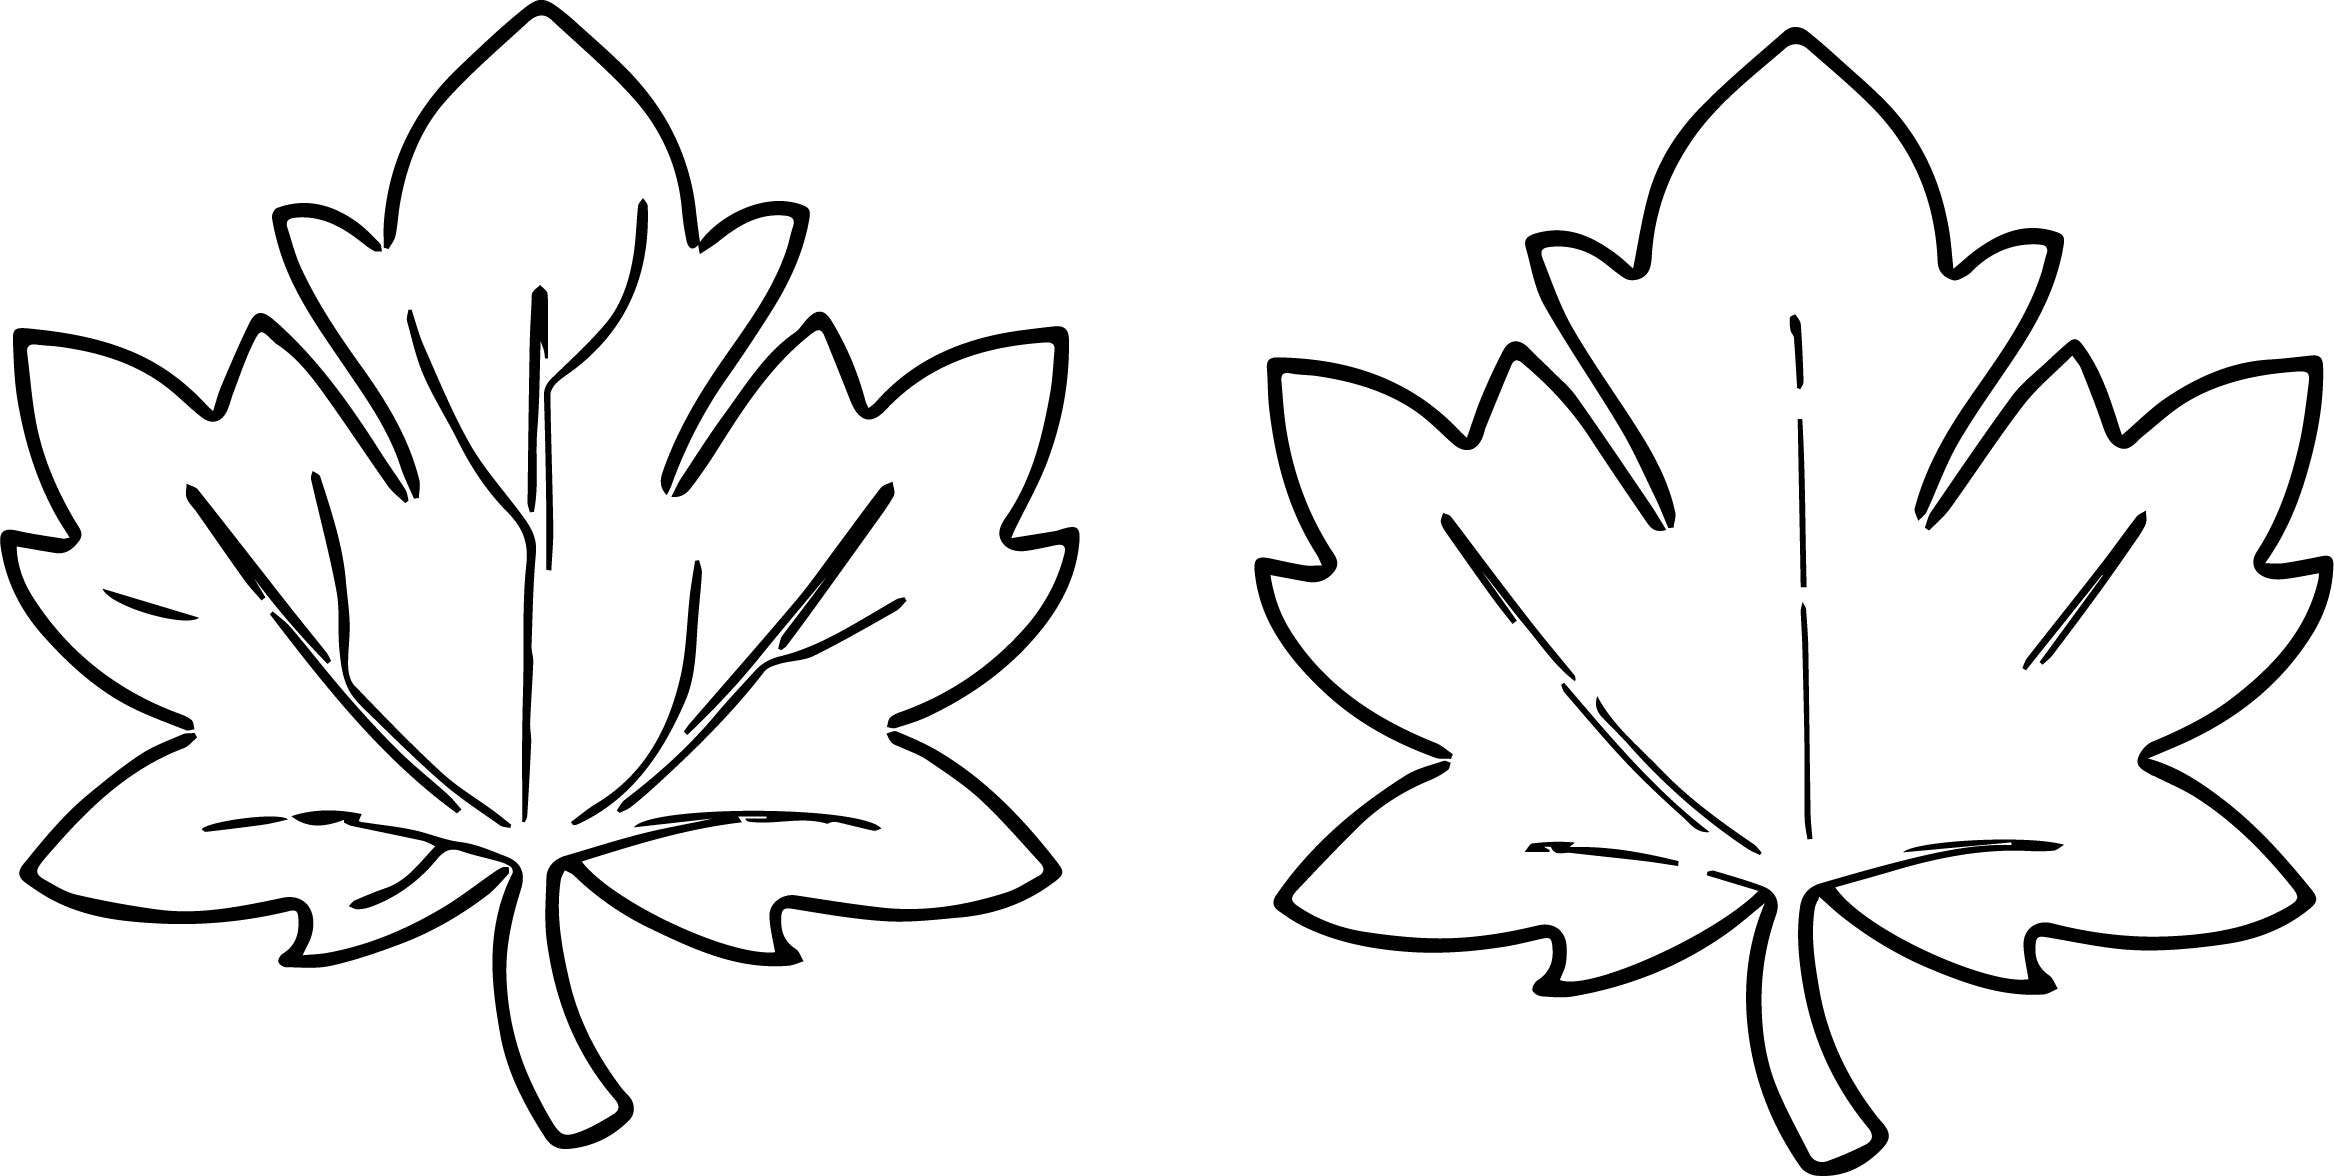 leave coloring pages - fall leaves images for fall leaf coloring page